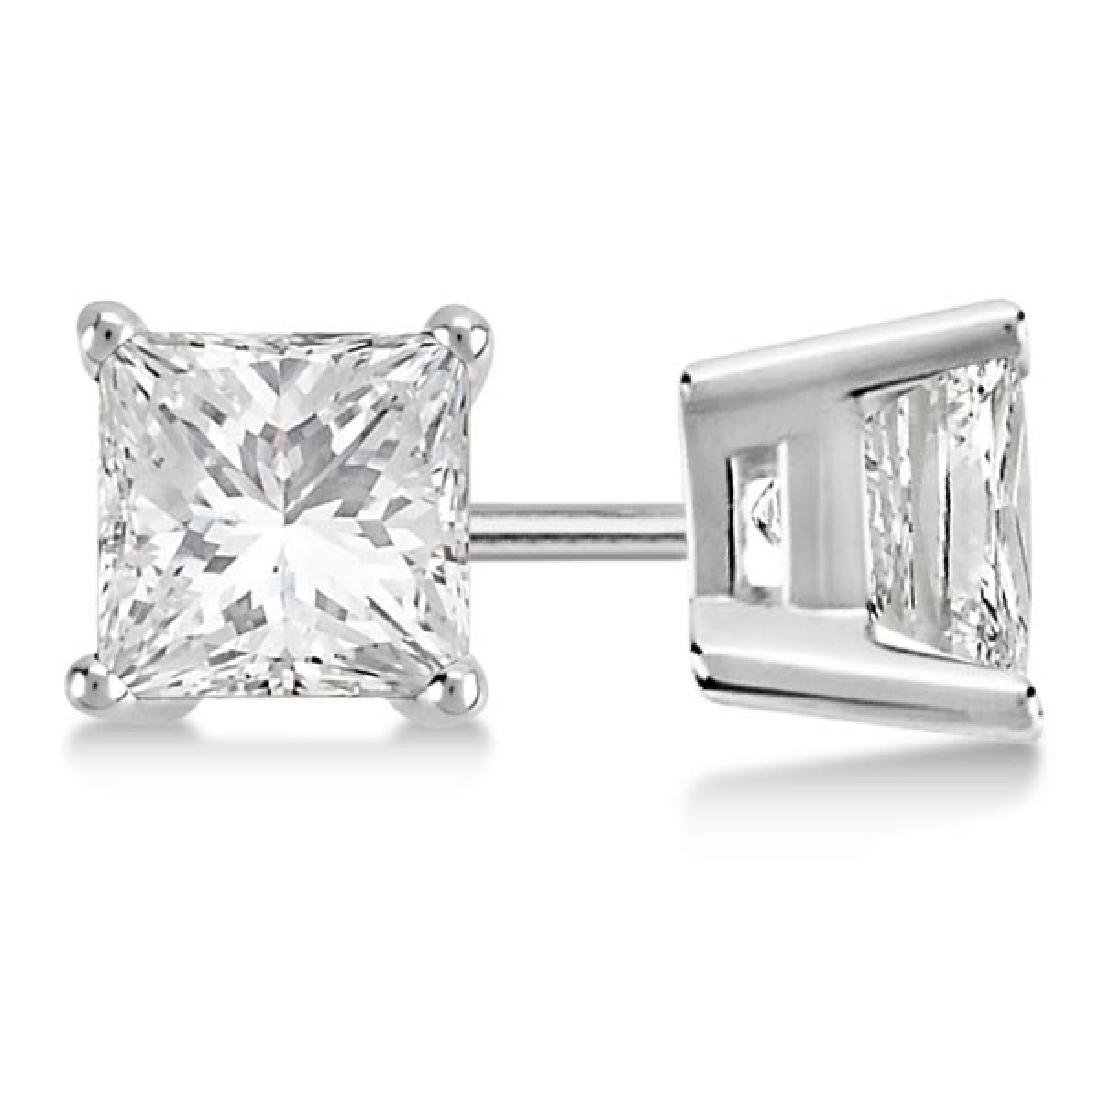 Certified 1 CTW Princess Diamond Stud Earrings E/SI2